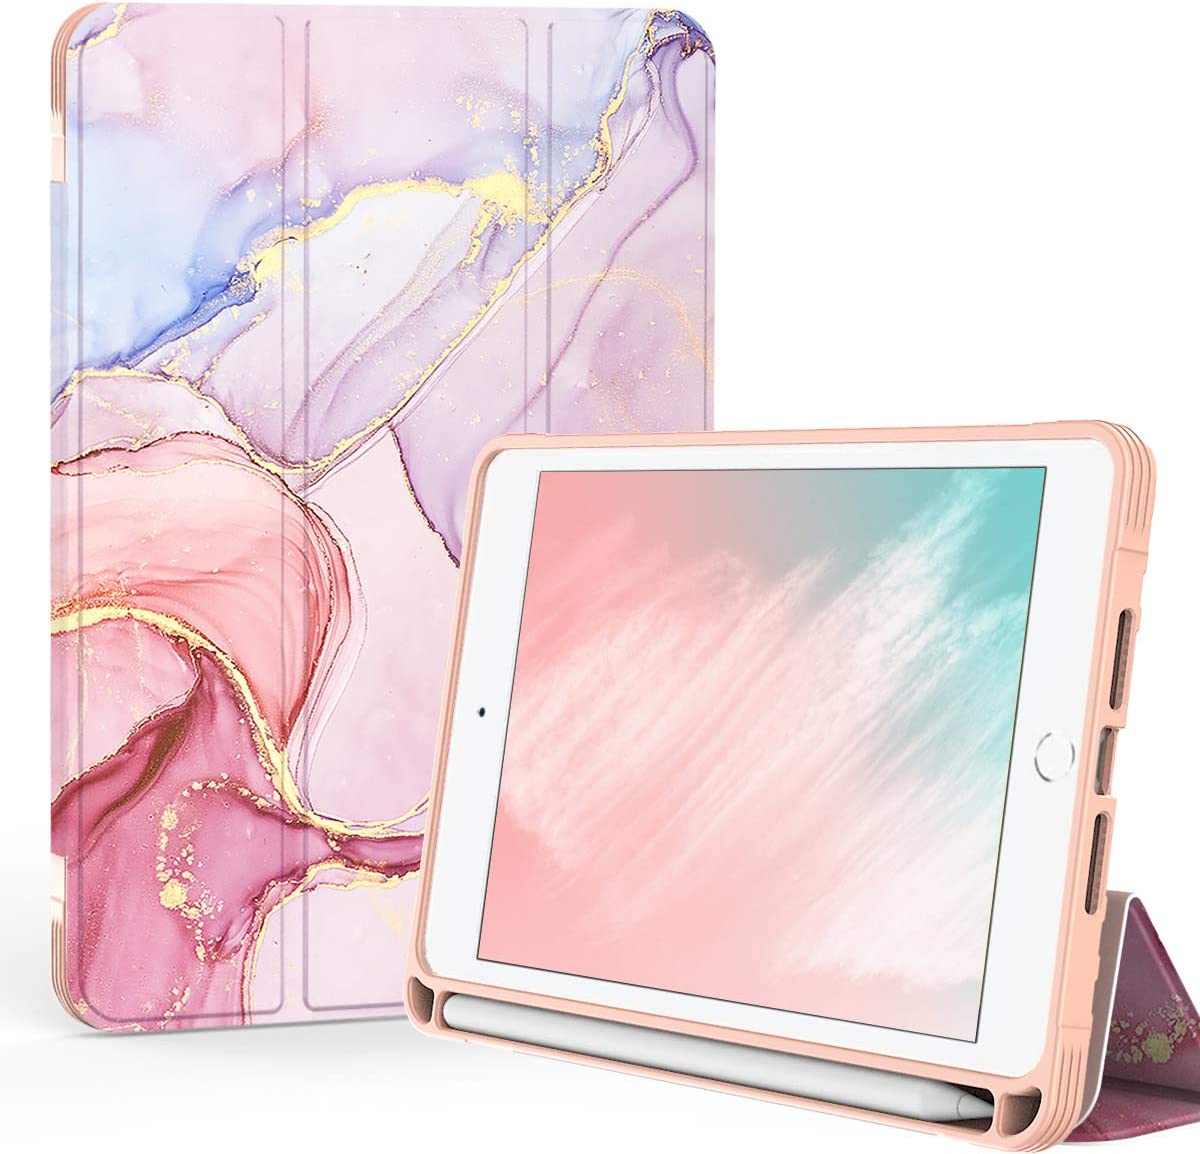 PIXIU Folio Case for iPad Mini 5th /4th Generation with Pencil Holder,Heavy Duty Trifold Stand PU Lleather Smart Cover with Auto Wake/Sleep Feature for iPad Mini 4/5 7.9 inch Purple Marble